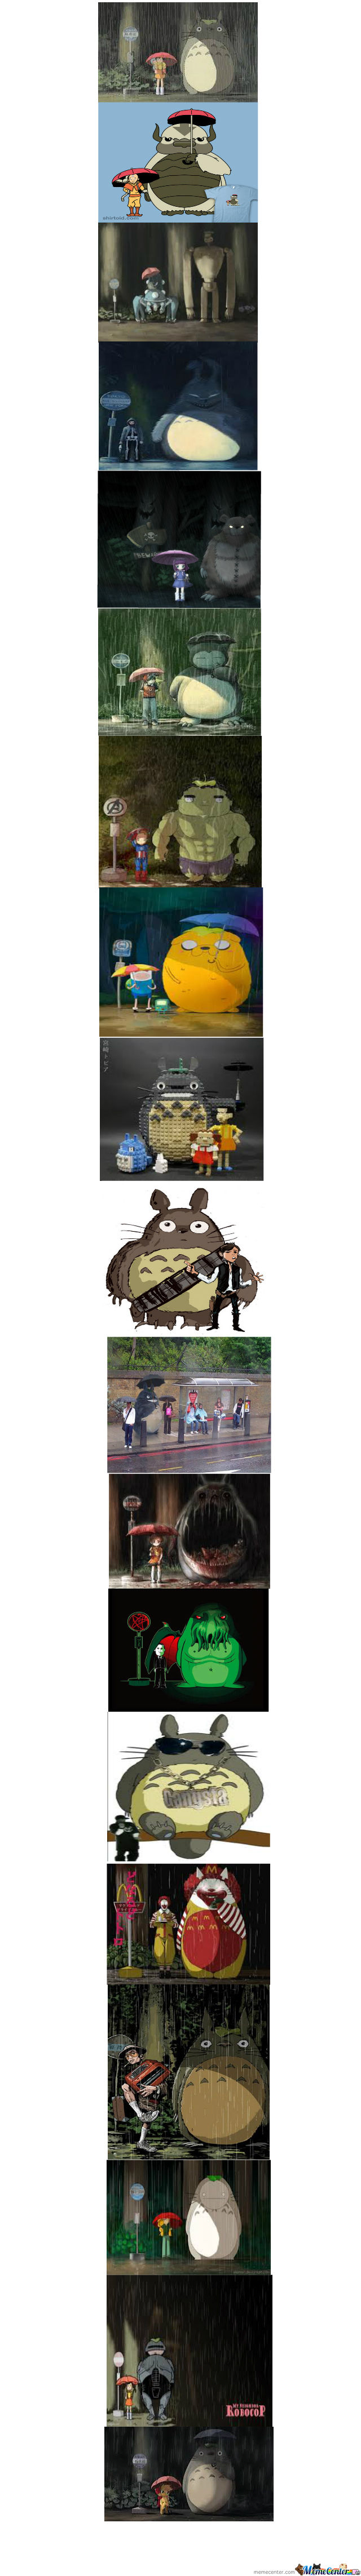 Shut Up And Take My Totoro Compilation